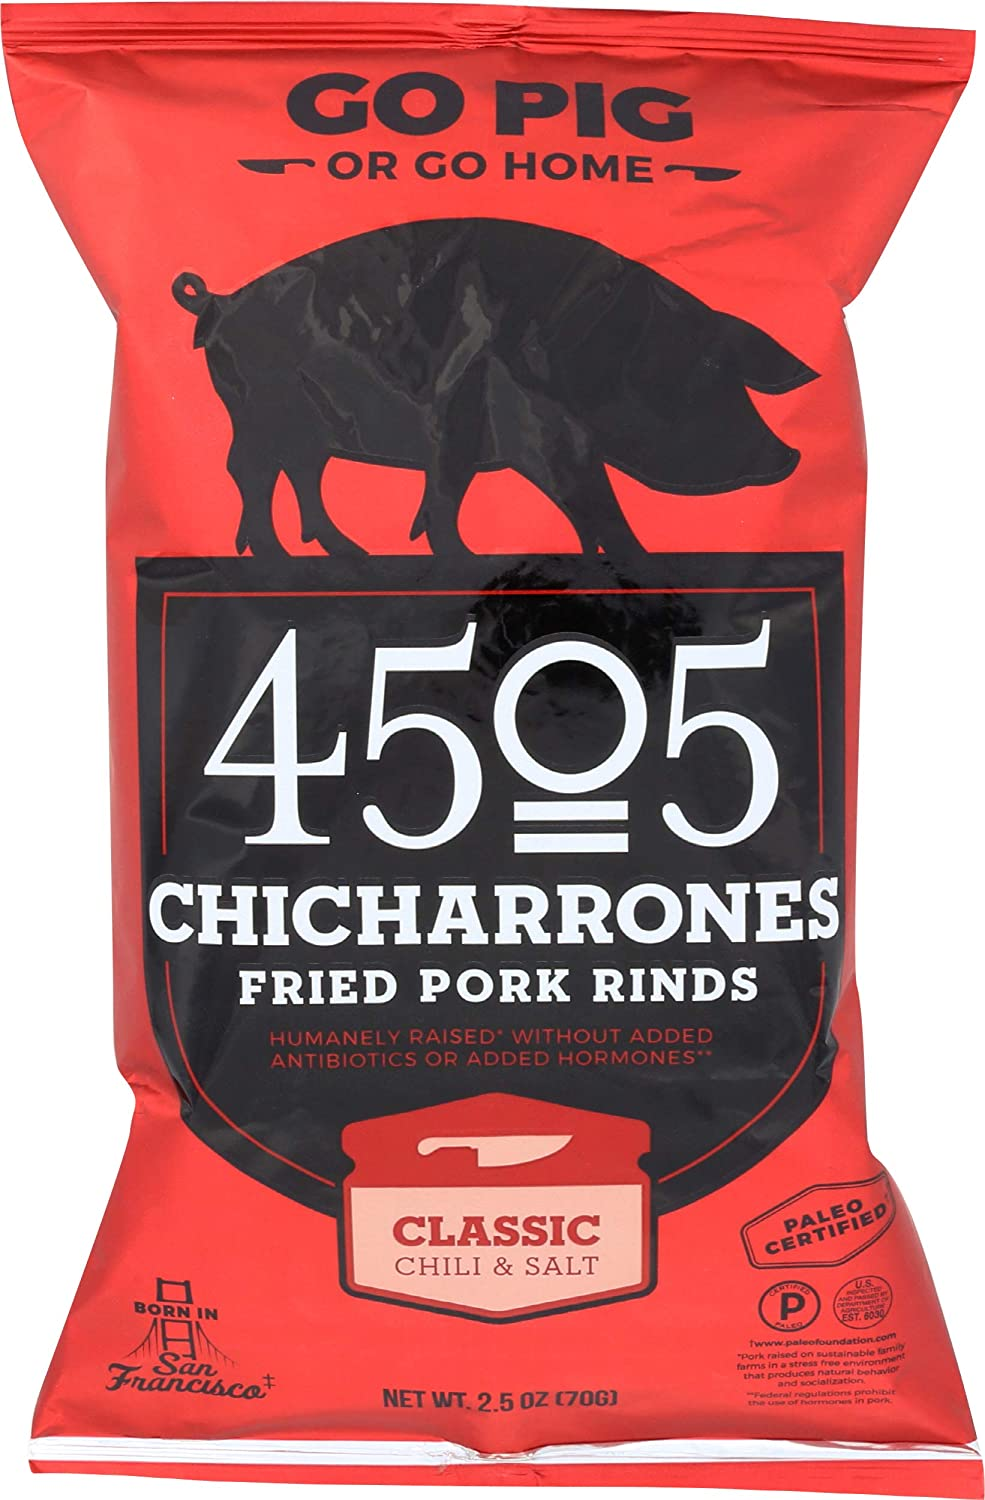 4505 Meats, Chicharrones, Fried Pork Rinds, Classic Chili, 2.5 Ounce